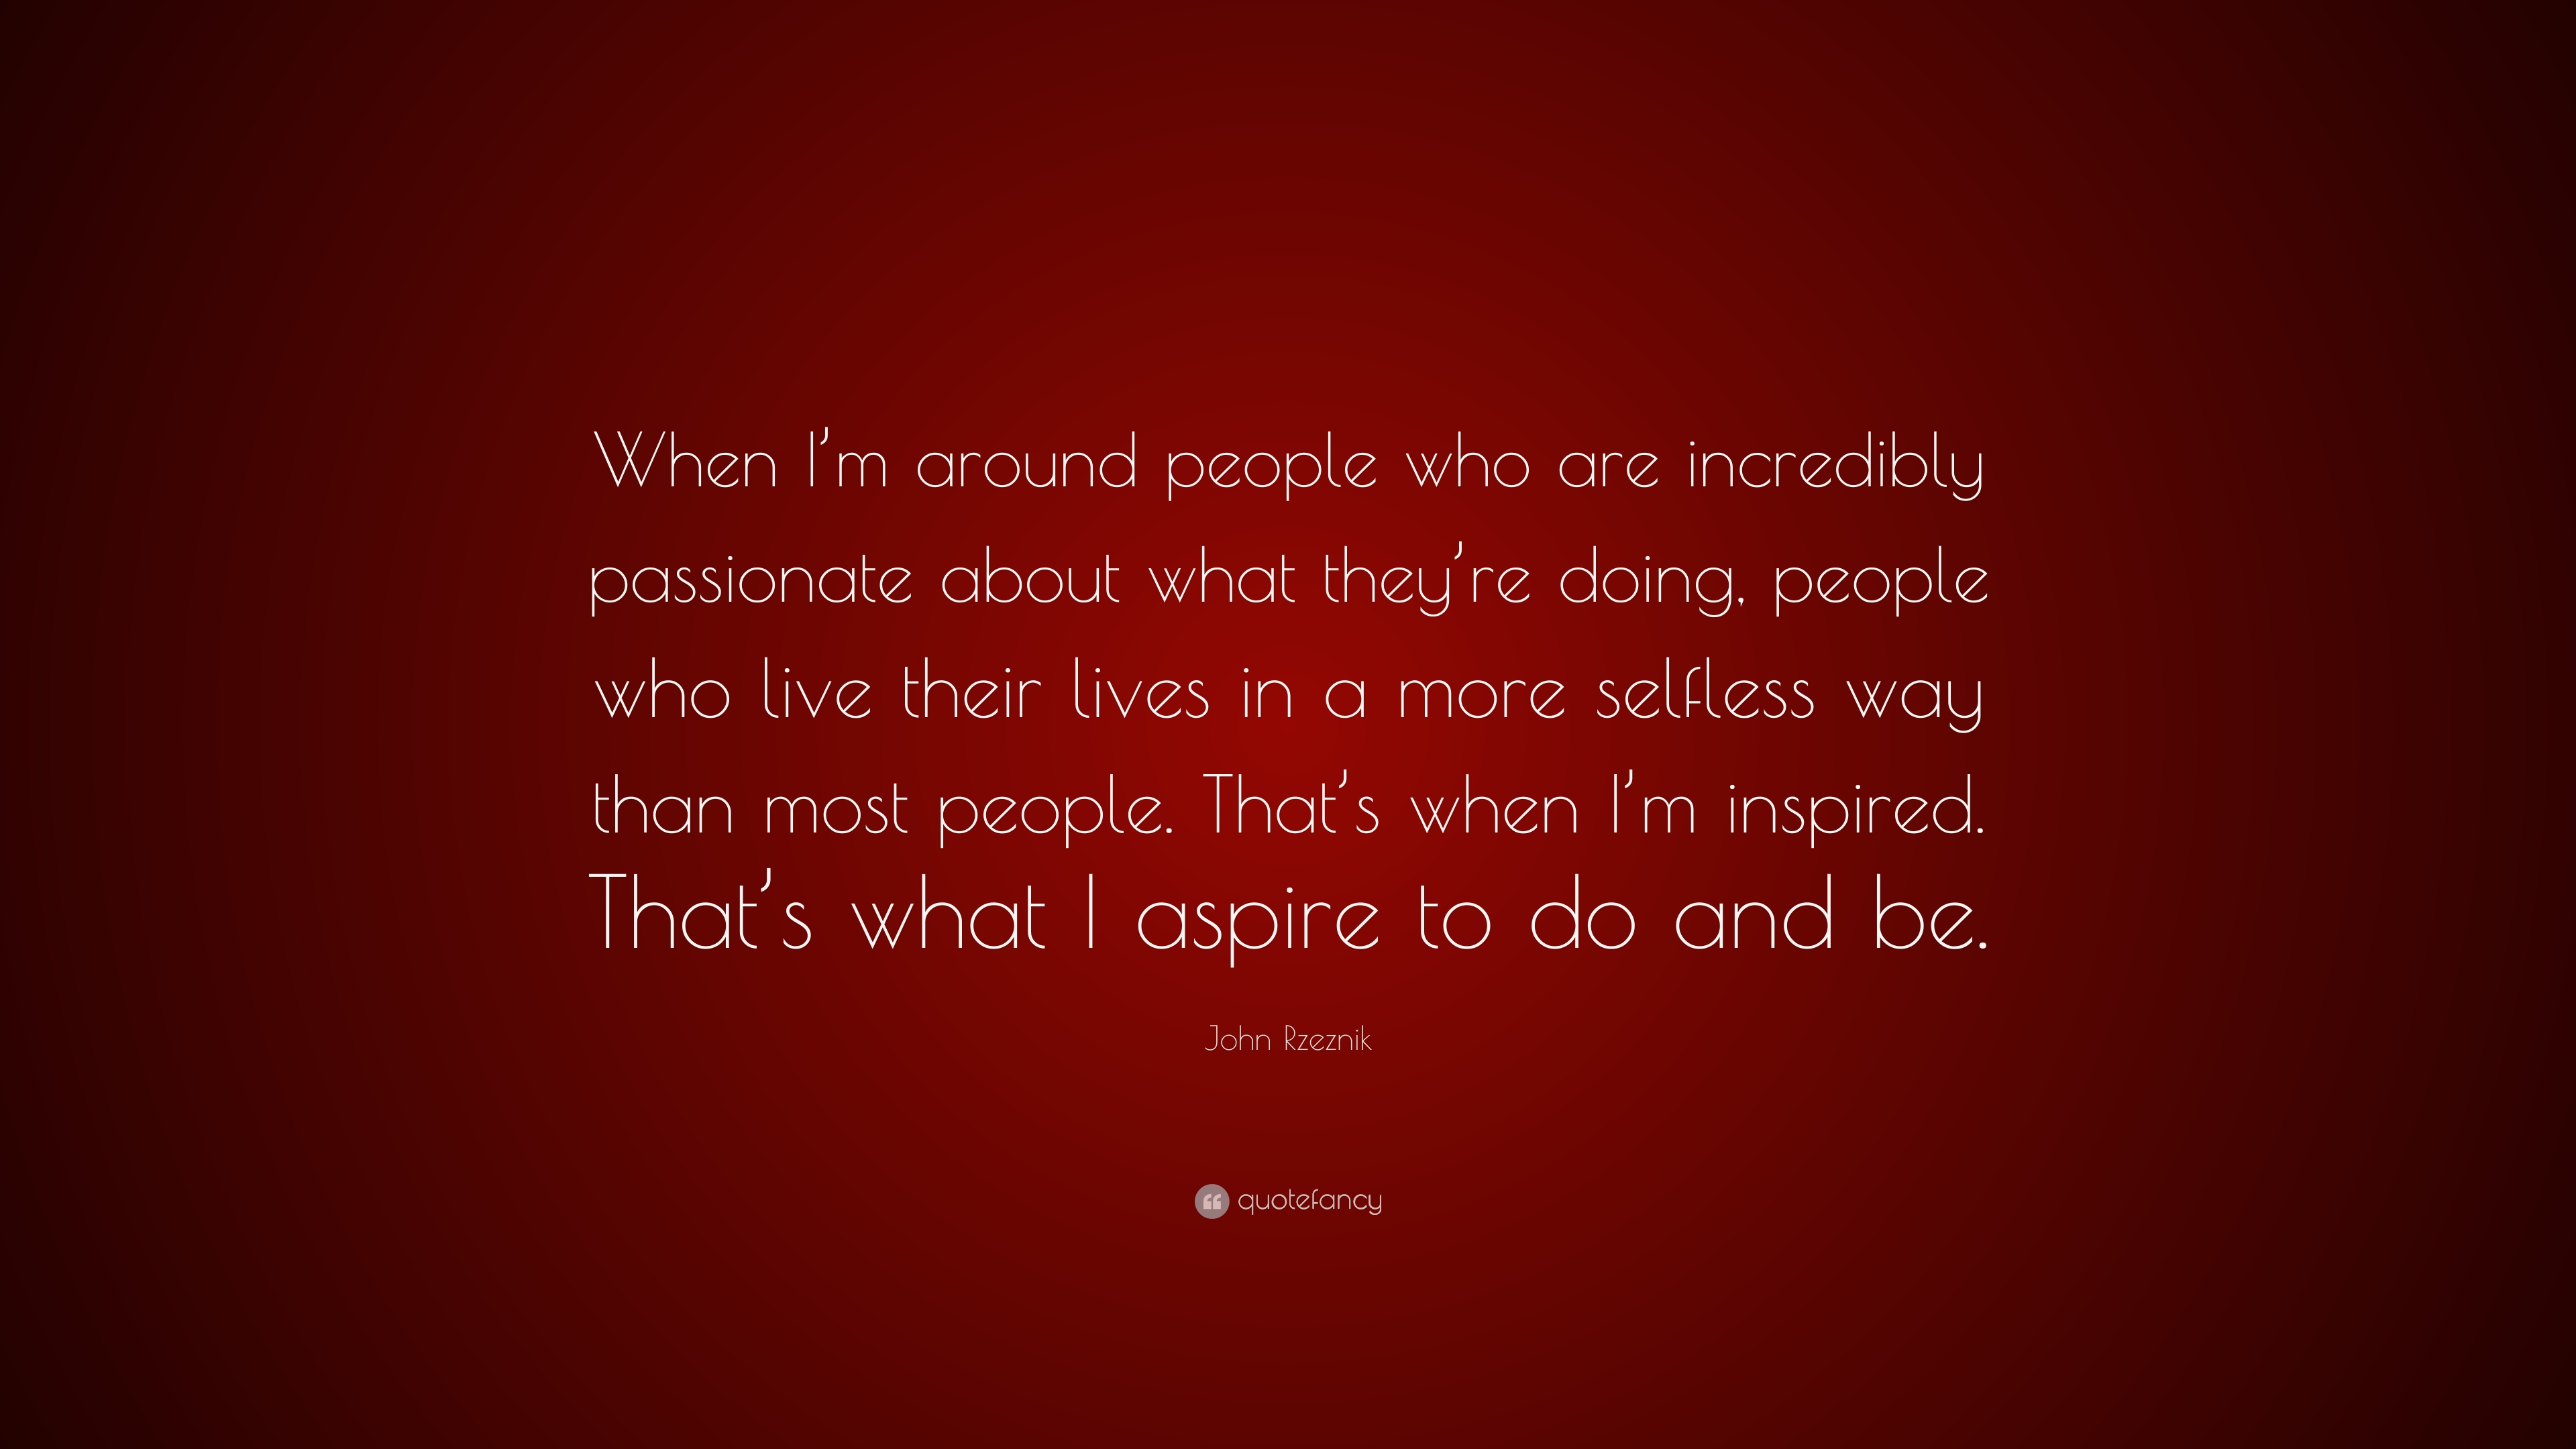 What are most people passionate about